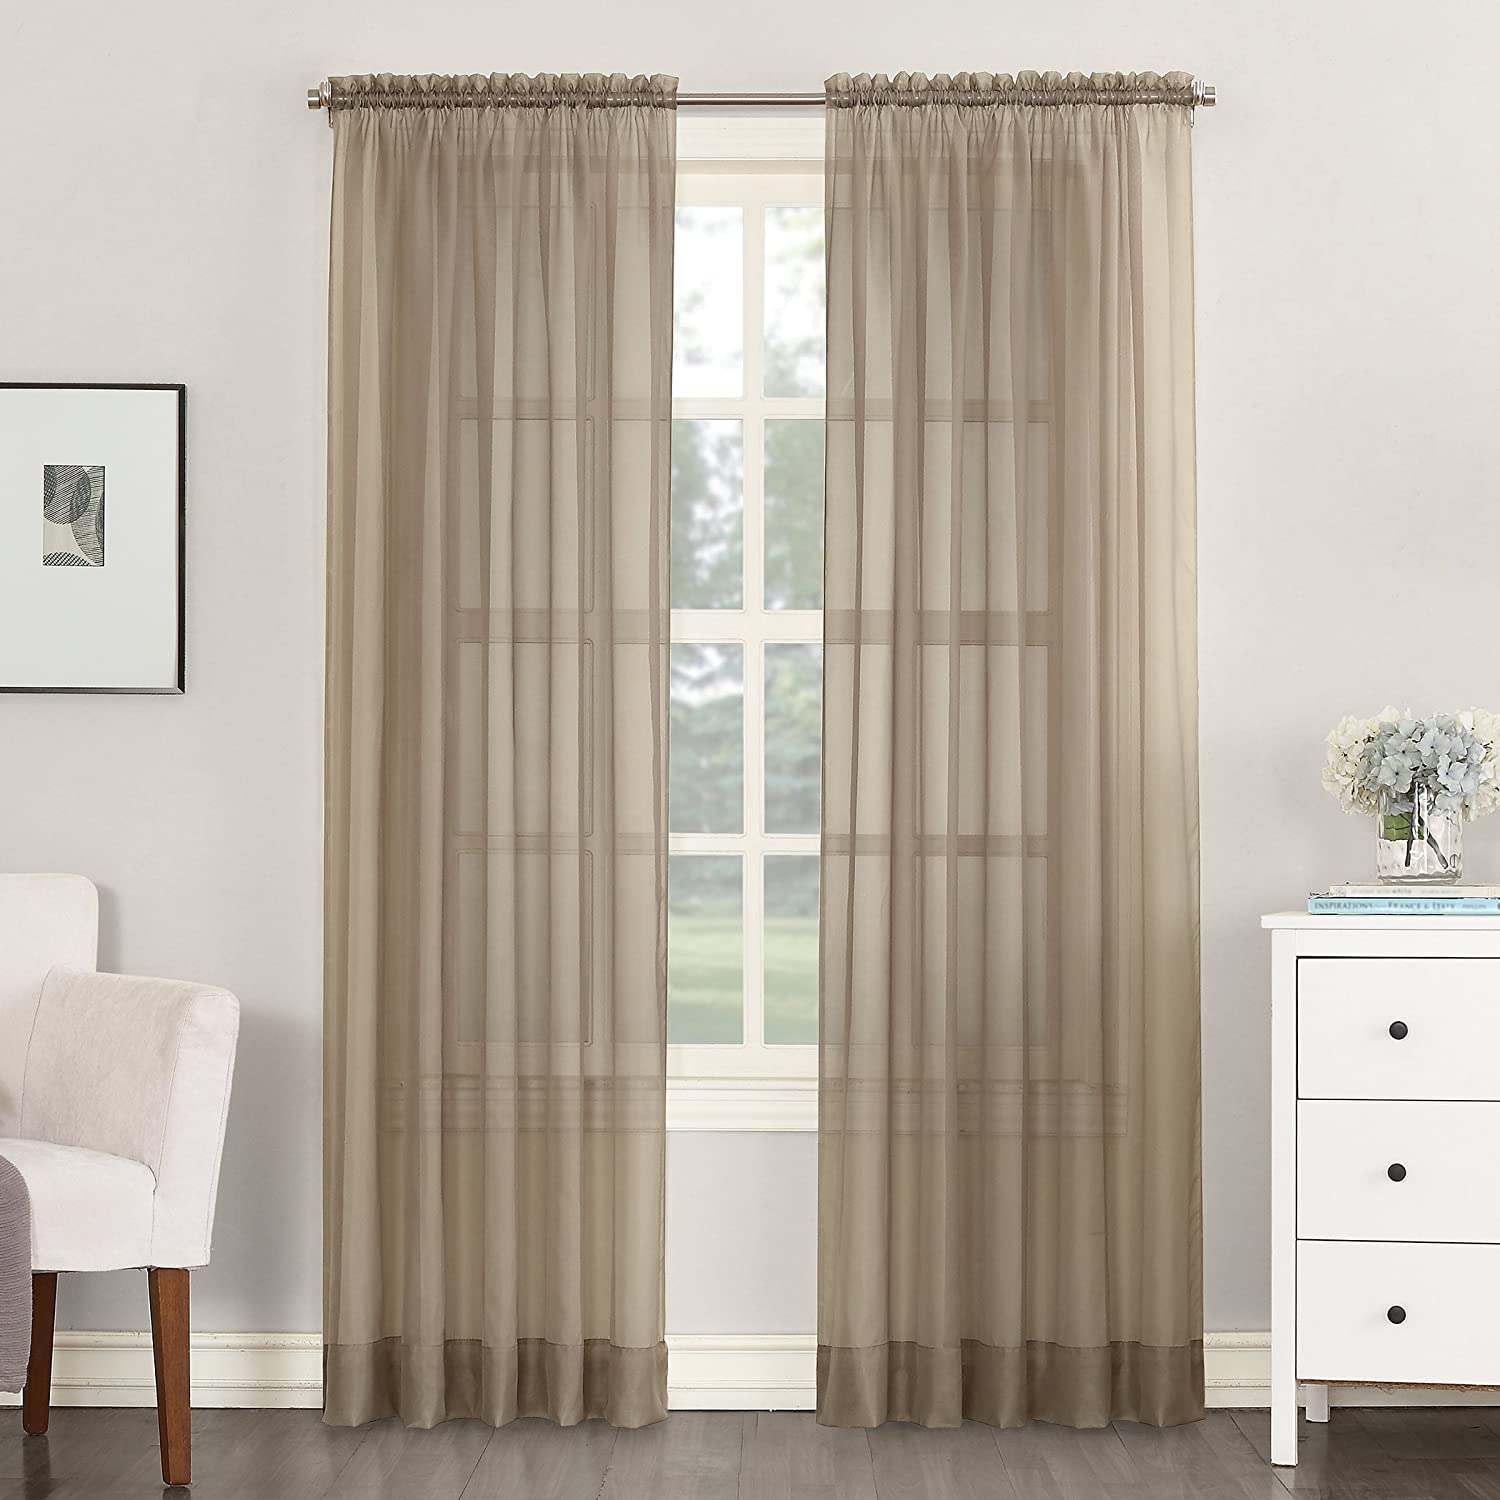 No. 918 Emily Sheer Voile Rod 2021 spring and summer new Curtain 59